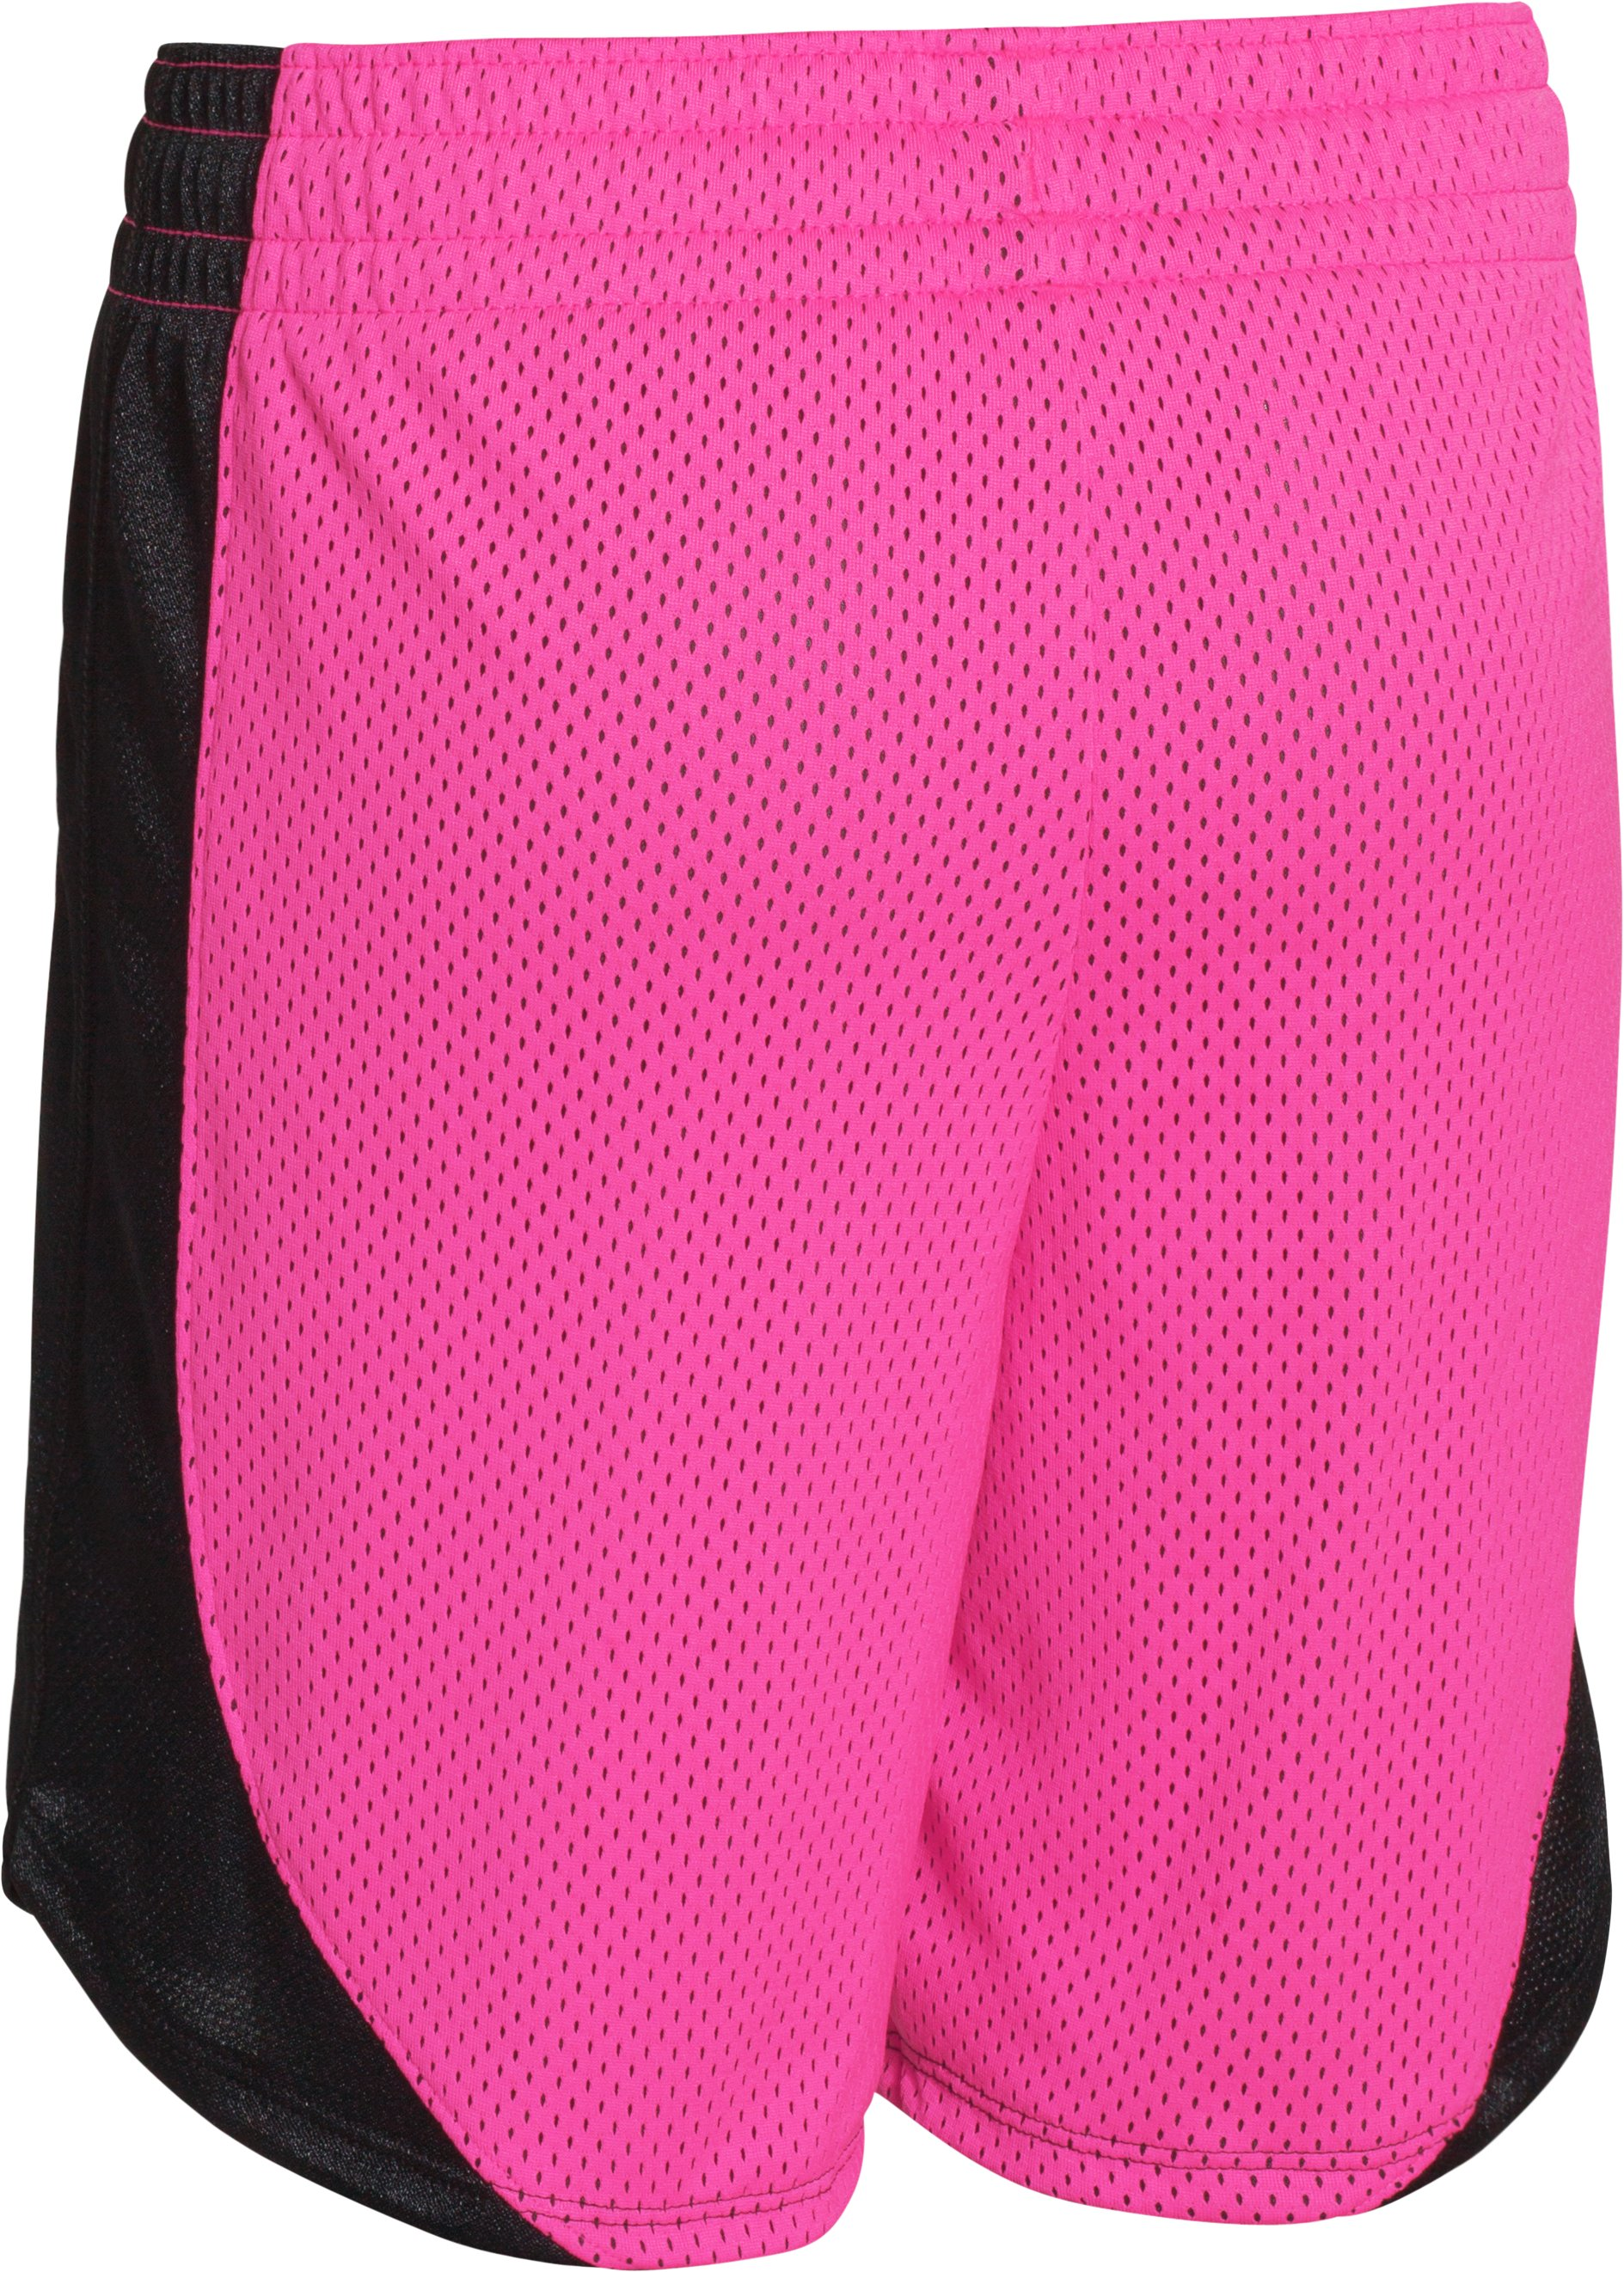 "Girls' UA Skillz 7"" Short, CHAOS"